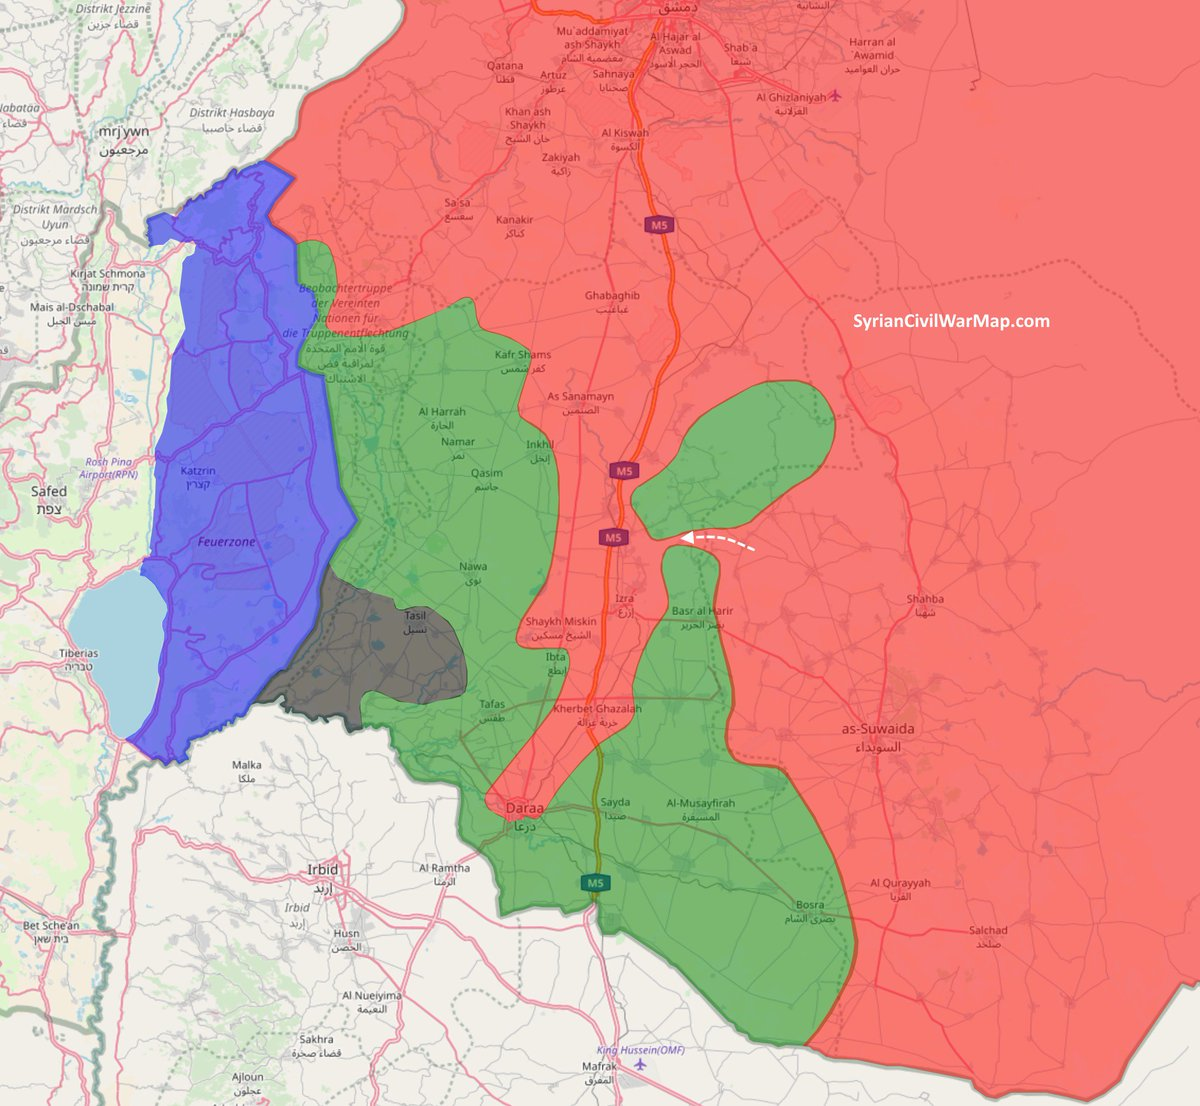 Syrian Civil War Map CivilWarMap Twitter